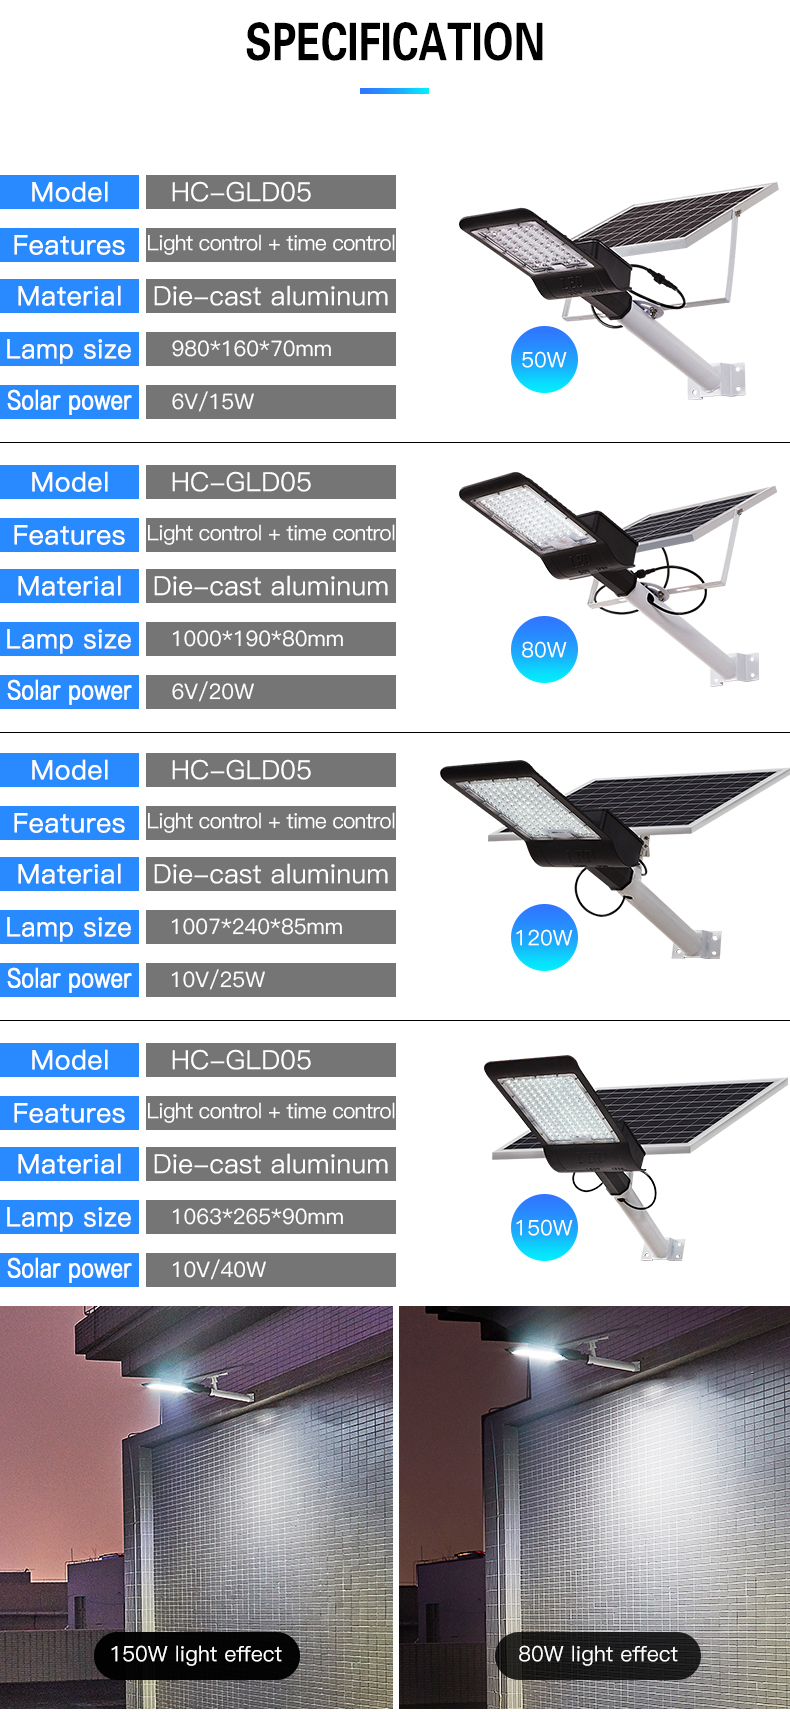 HIGH CLASS Outdoor waterproof High performance ip66 50w 80w 120w 150w led solar street light